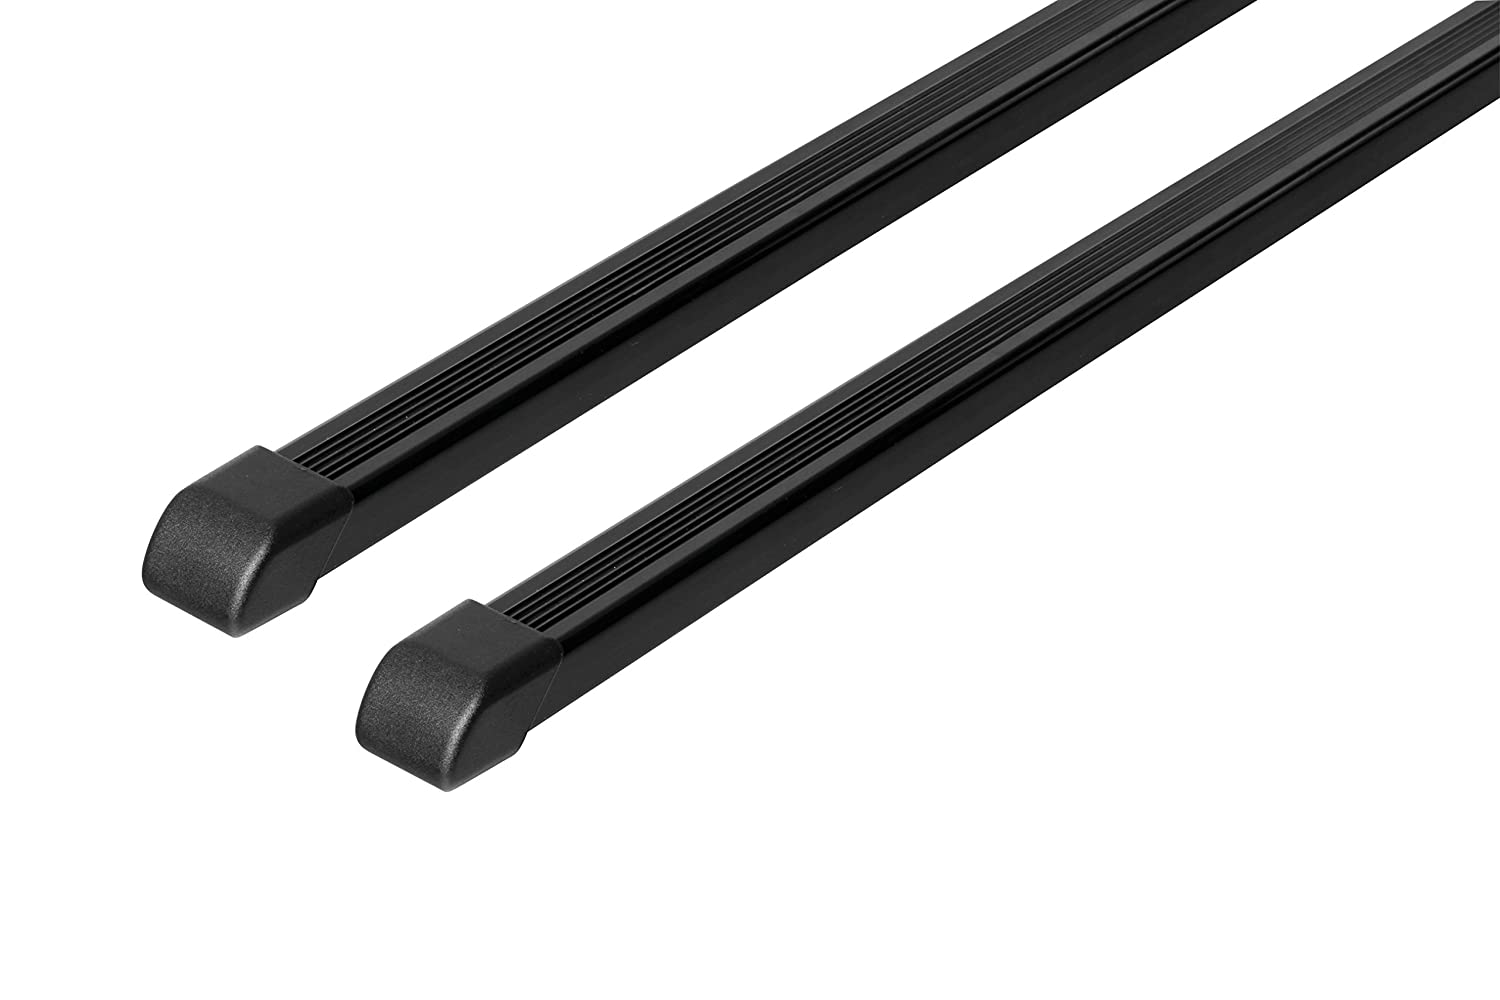 E39 1995-2003 Lockable Nordrive Roof Bars for BMW 5 Series